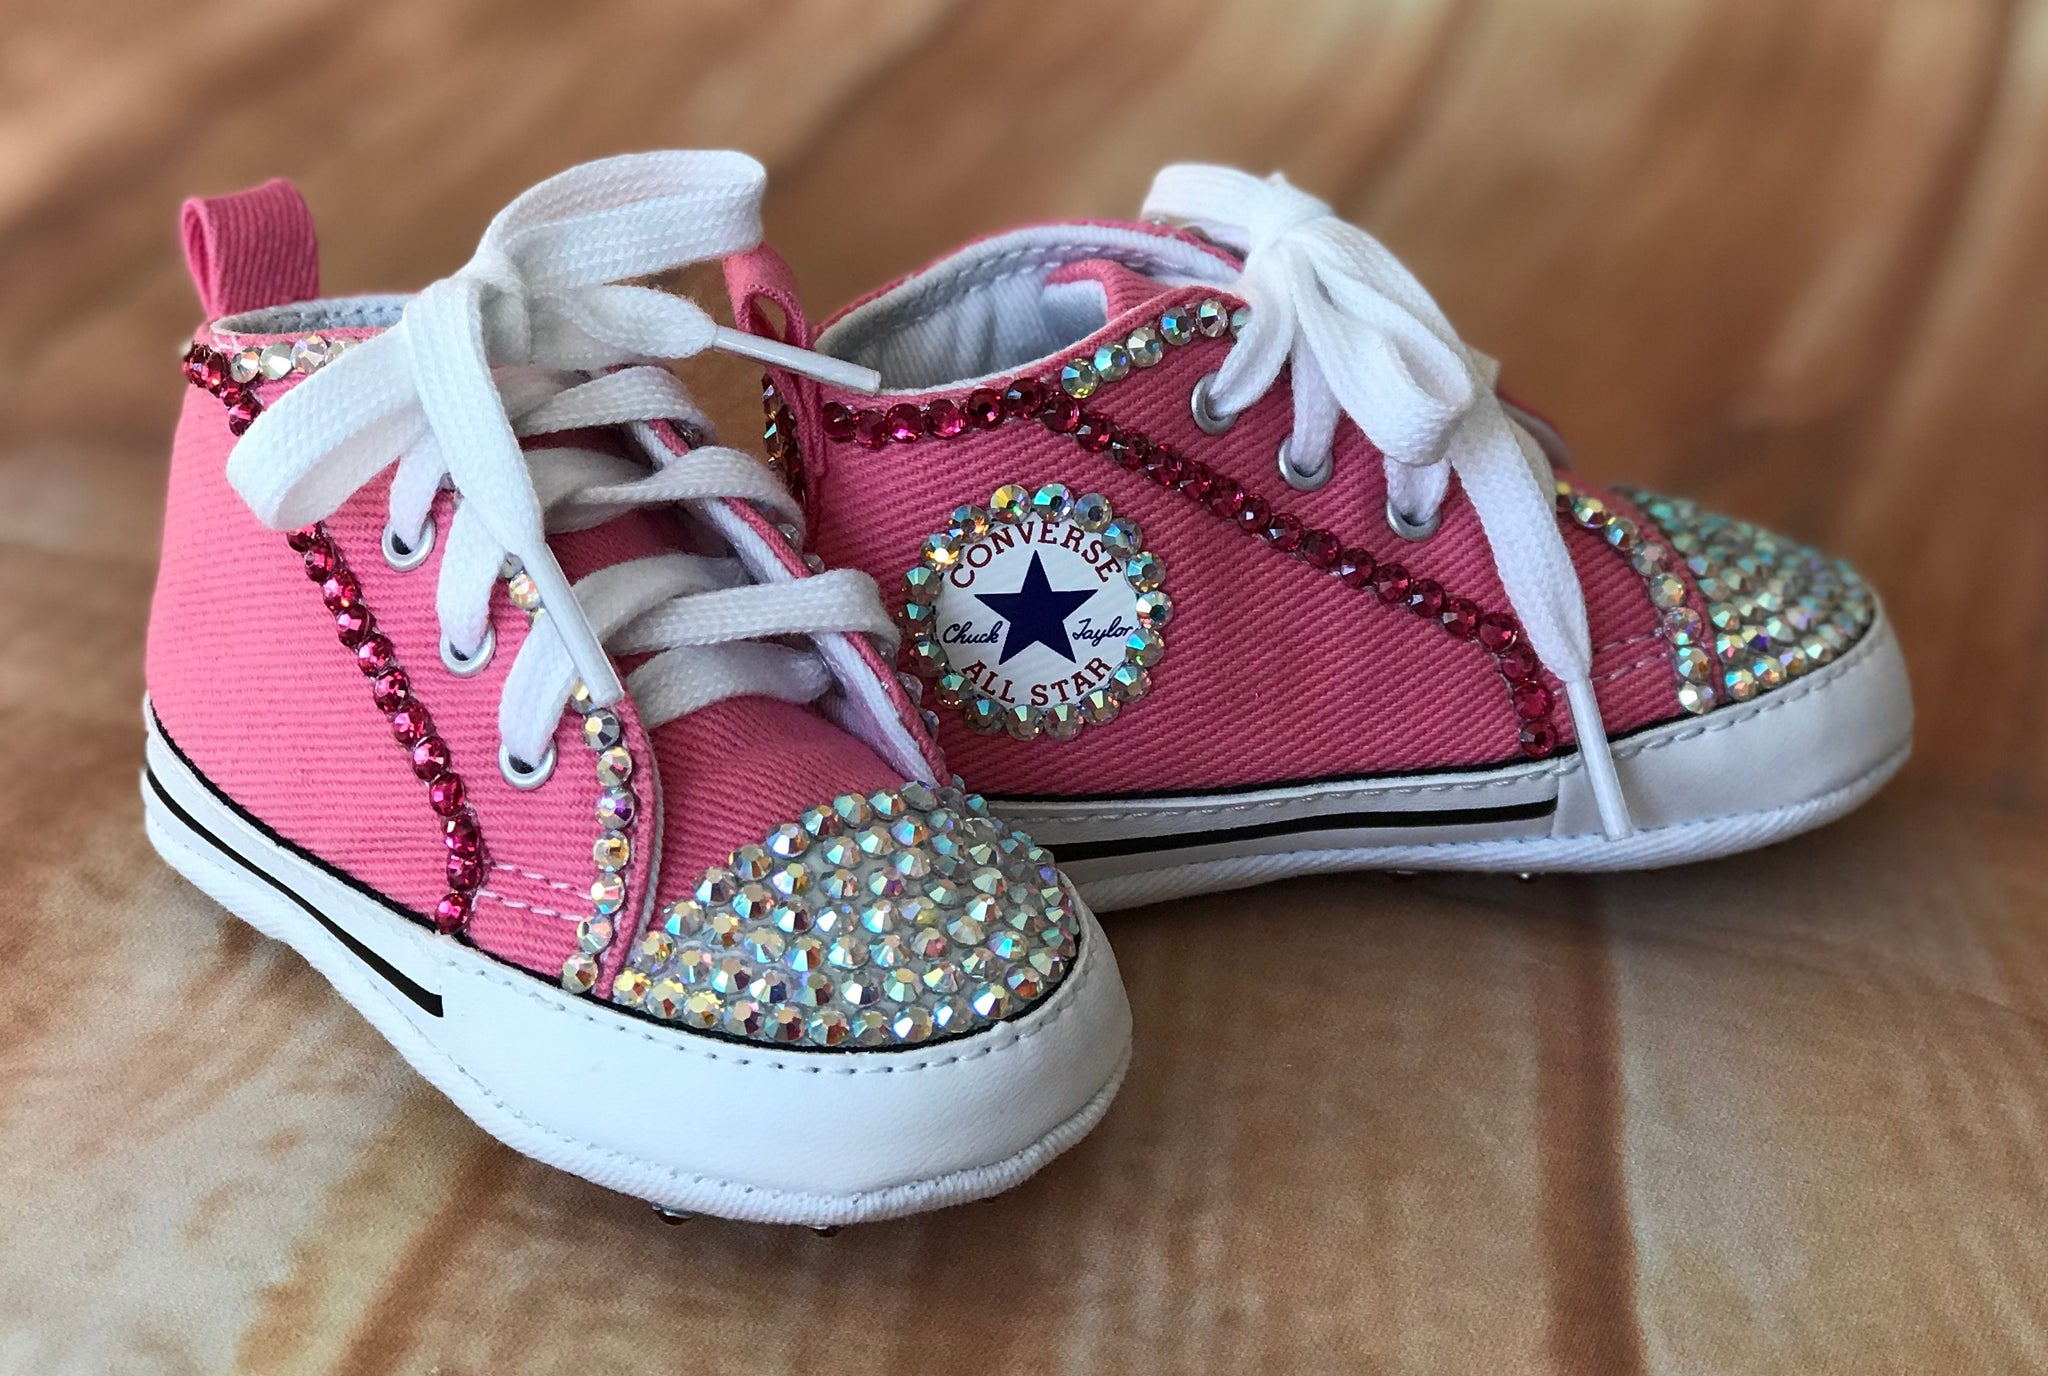 bc4f160a4383 Blinged Pink Baby Converse Sneakers